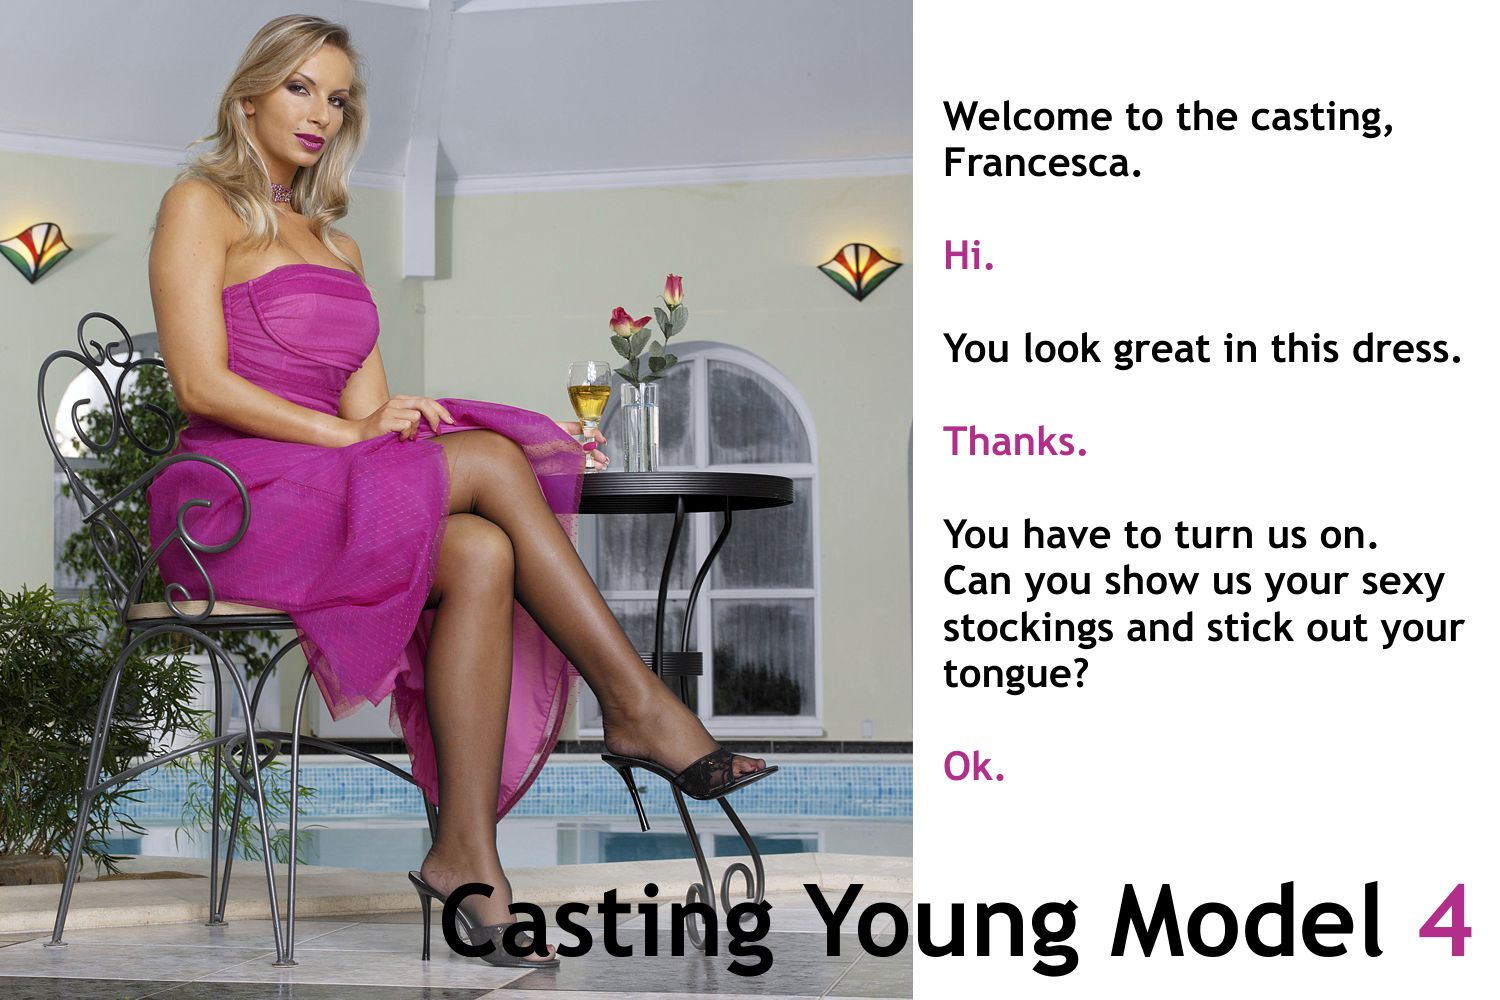 casting_young_model_4_001